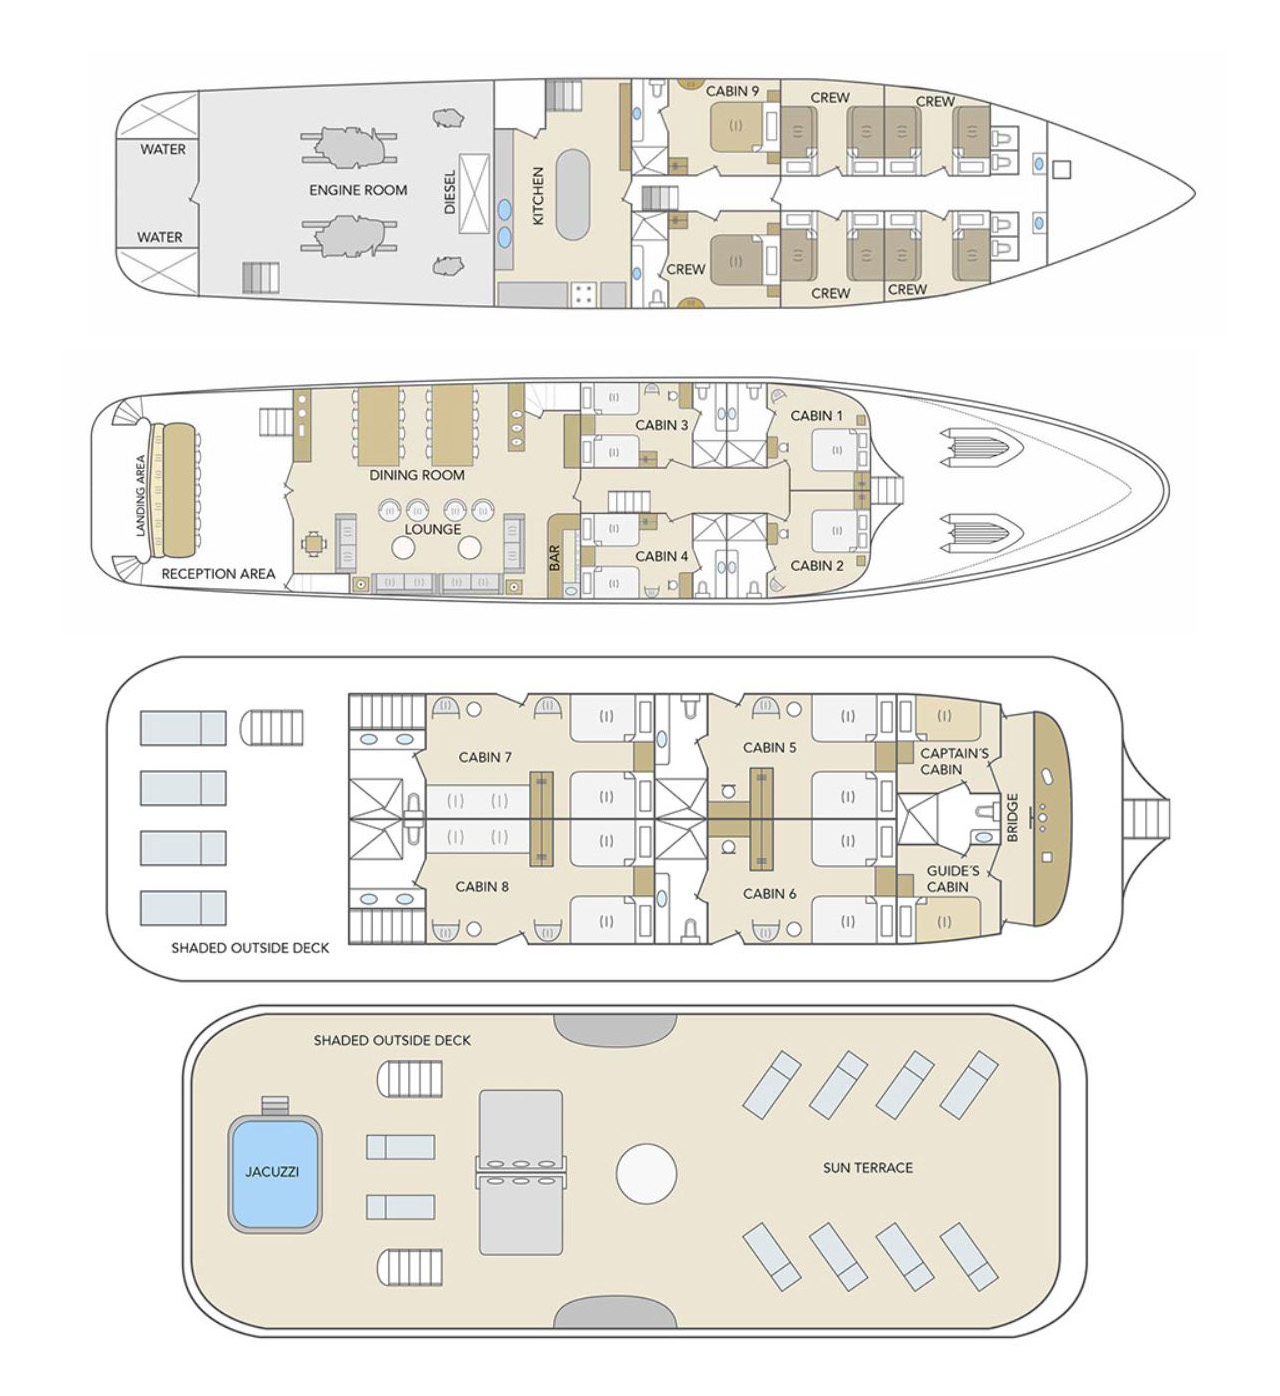 Cabin layout for Galapagos Odyssey